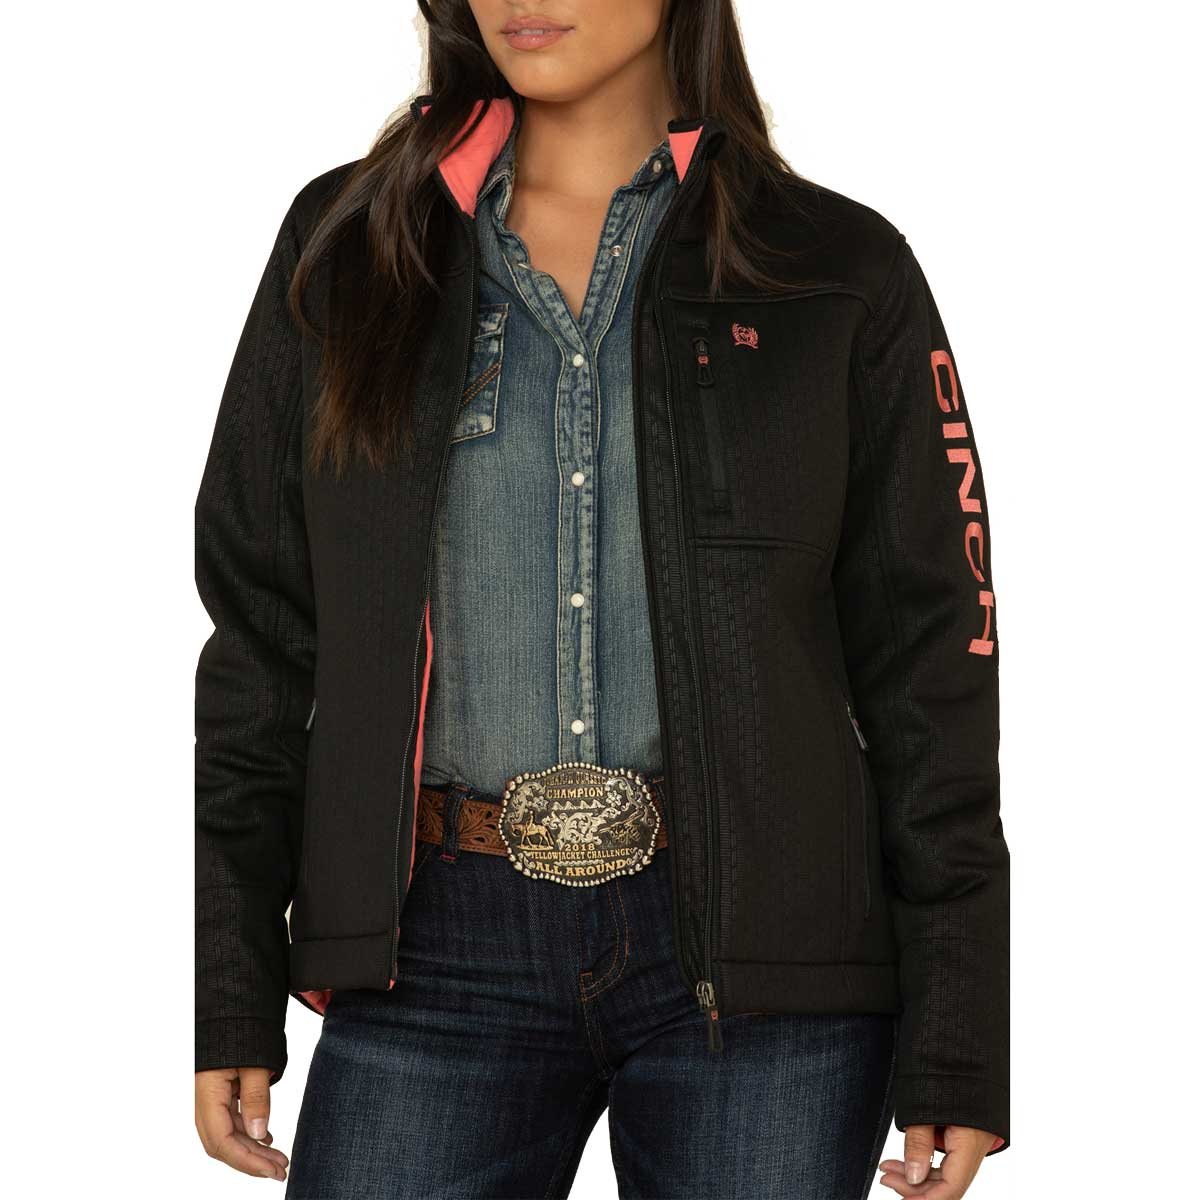 Cinch Women's Concealed Carry Bonded Jacket - Black and Pink